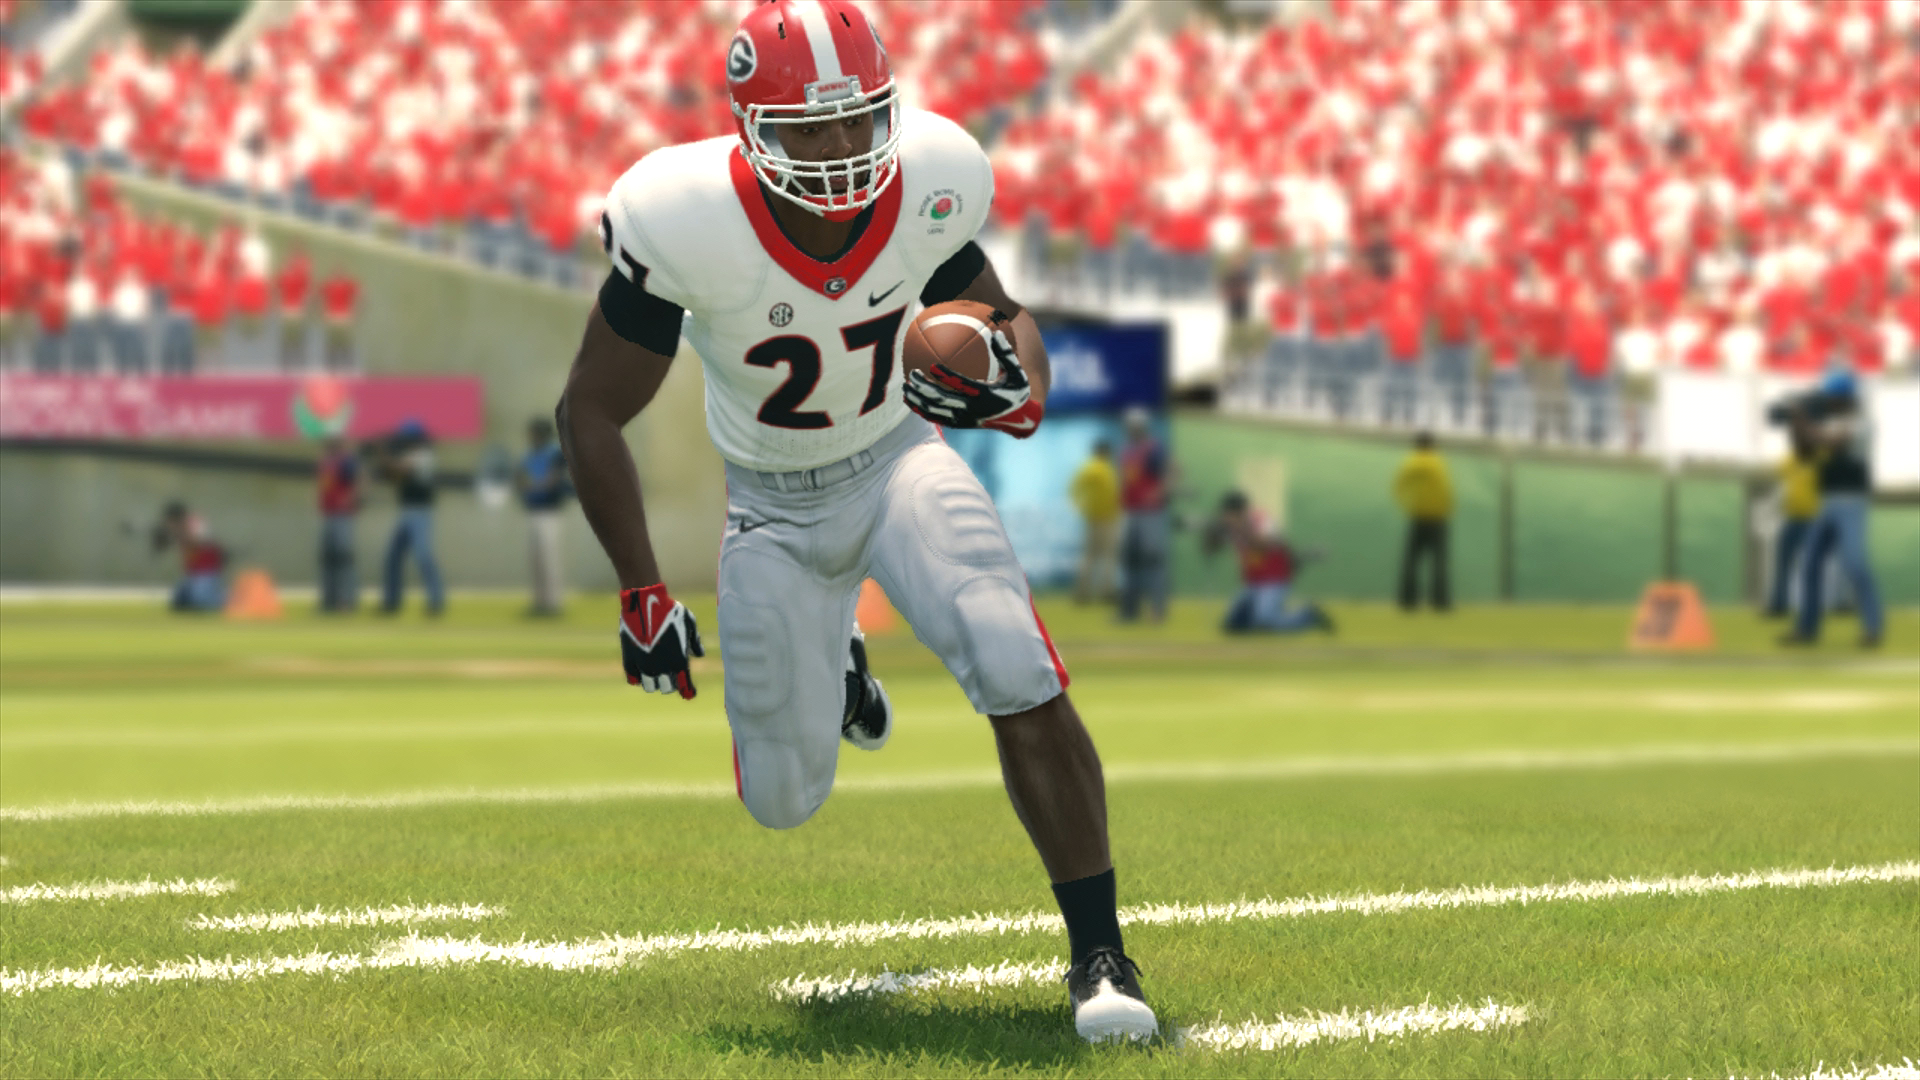 'NCAA Football' video game made unlikely by NIL recommendation